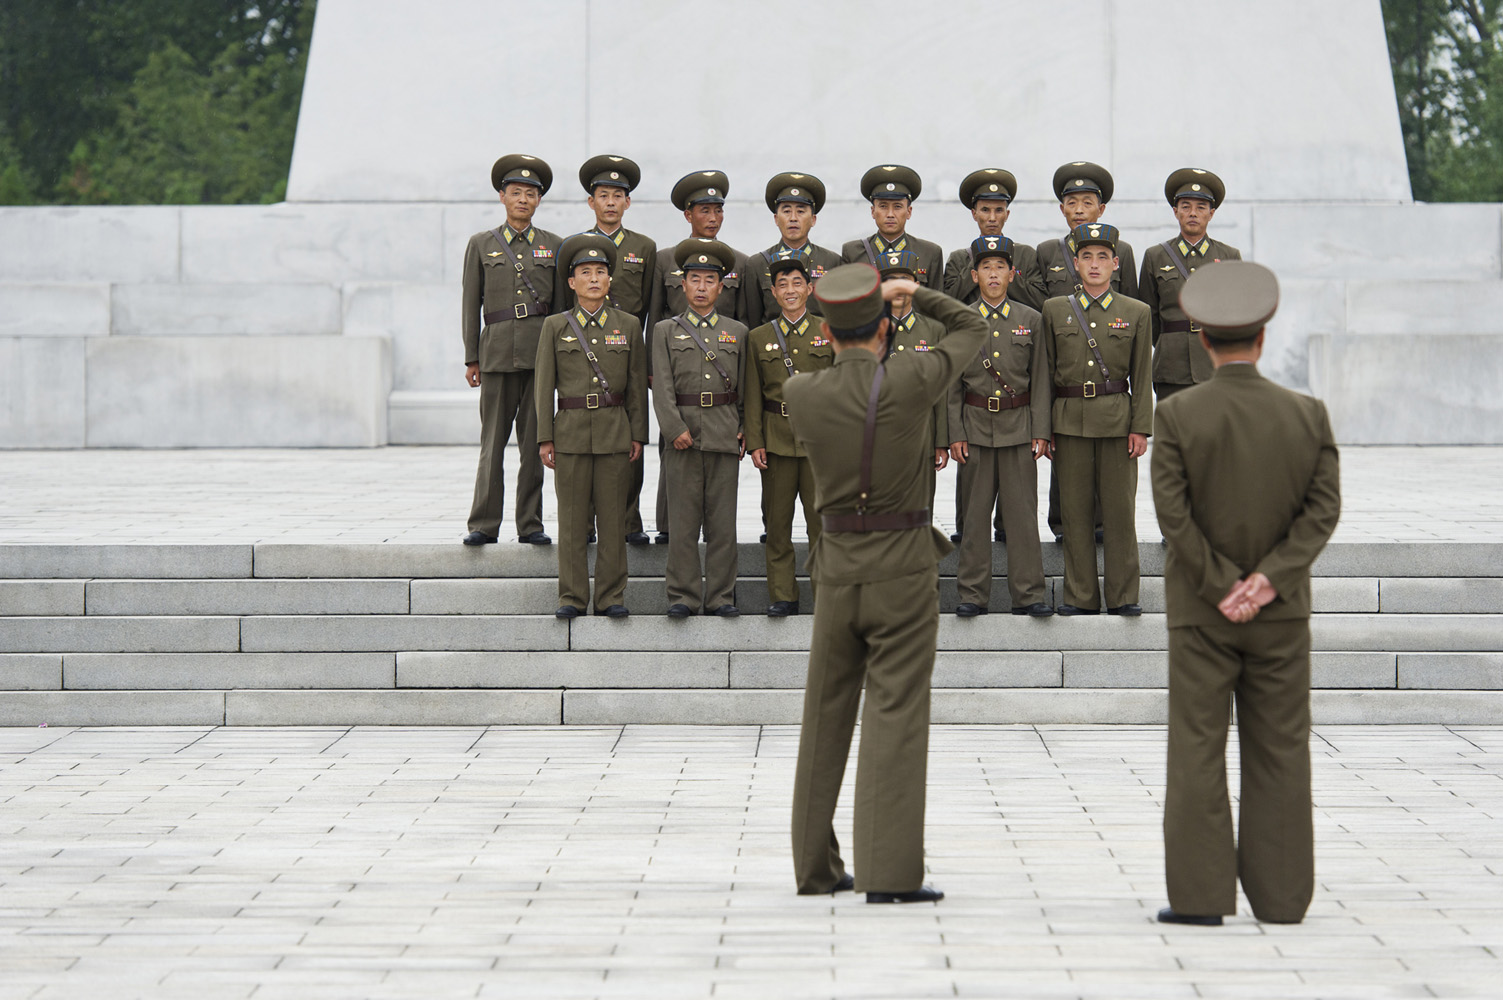 North Korean soldiers taking a group portrait in the capital Pyongyang.